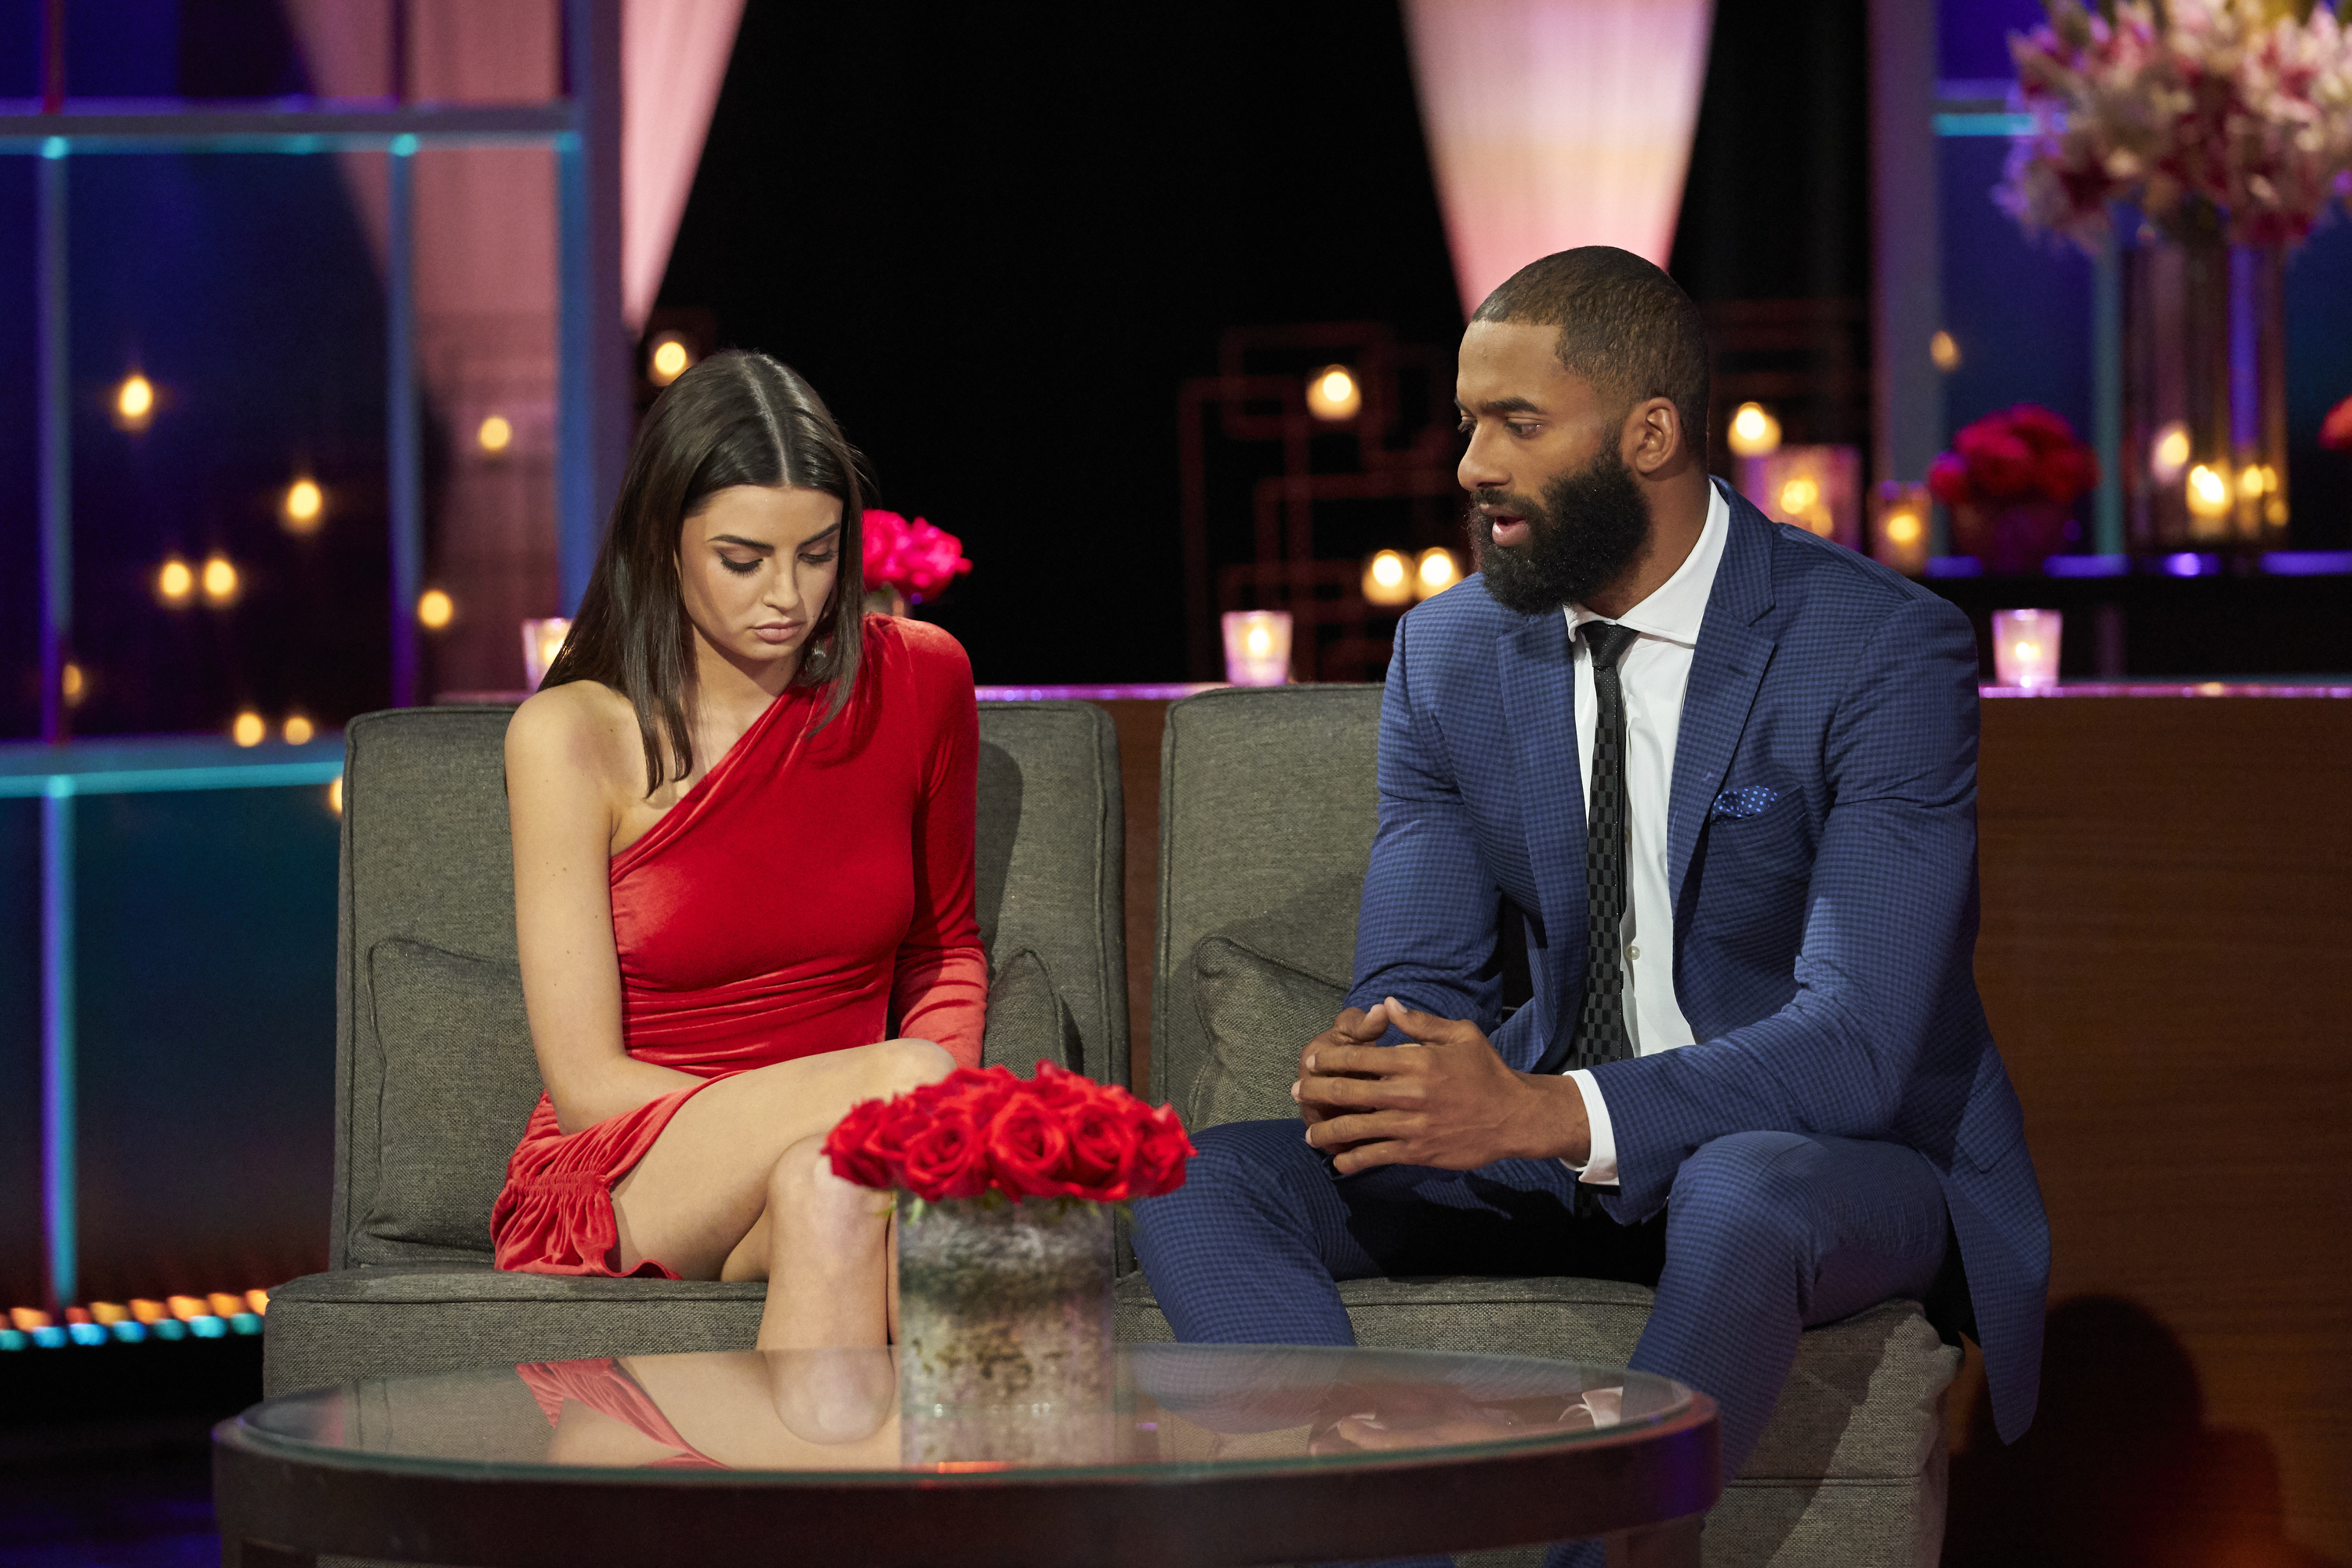 Matt and Rachael's breakup on The Bachelor is a symbol of a broken America | Opinion